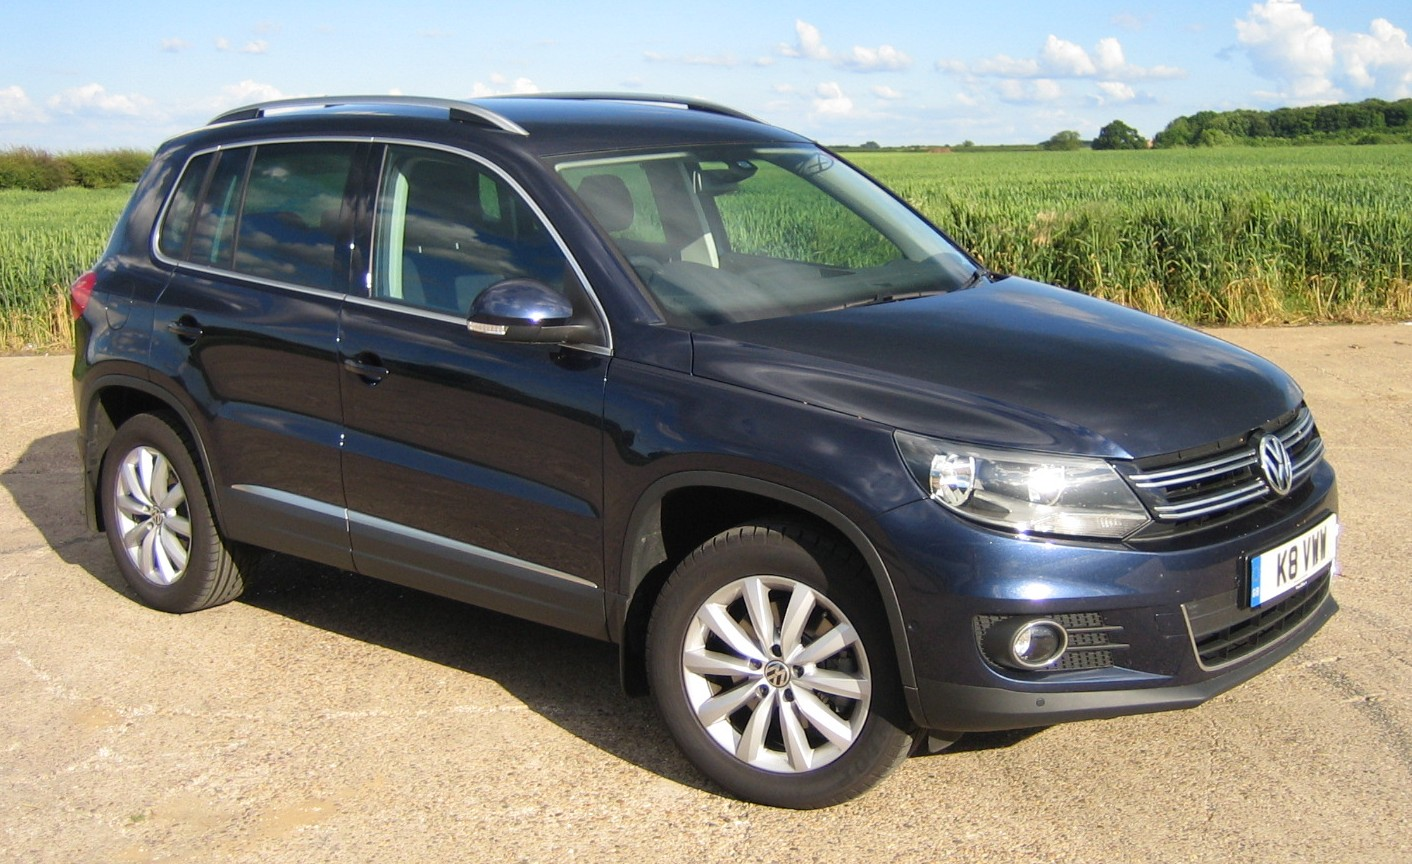 volkswagen tiguan match 2 0 tdi review road test report. Black Bedroom Furniture Sets. Home Design Ideas